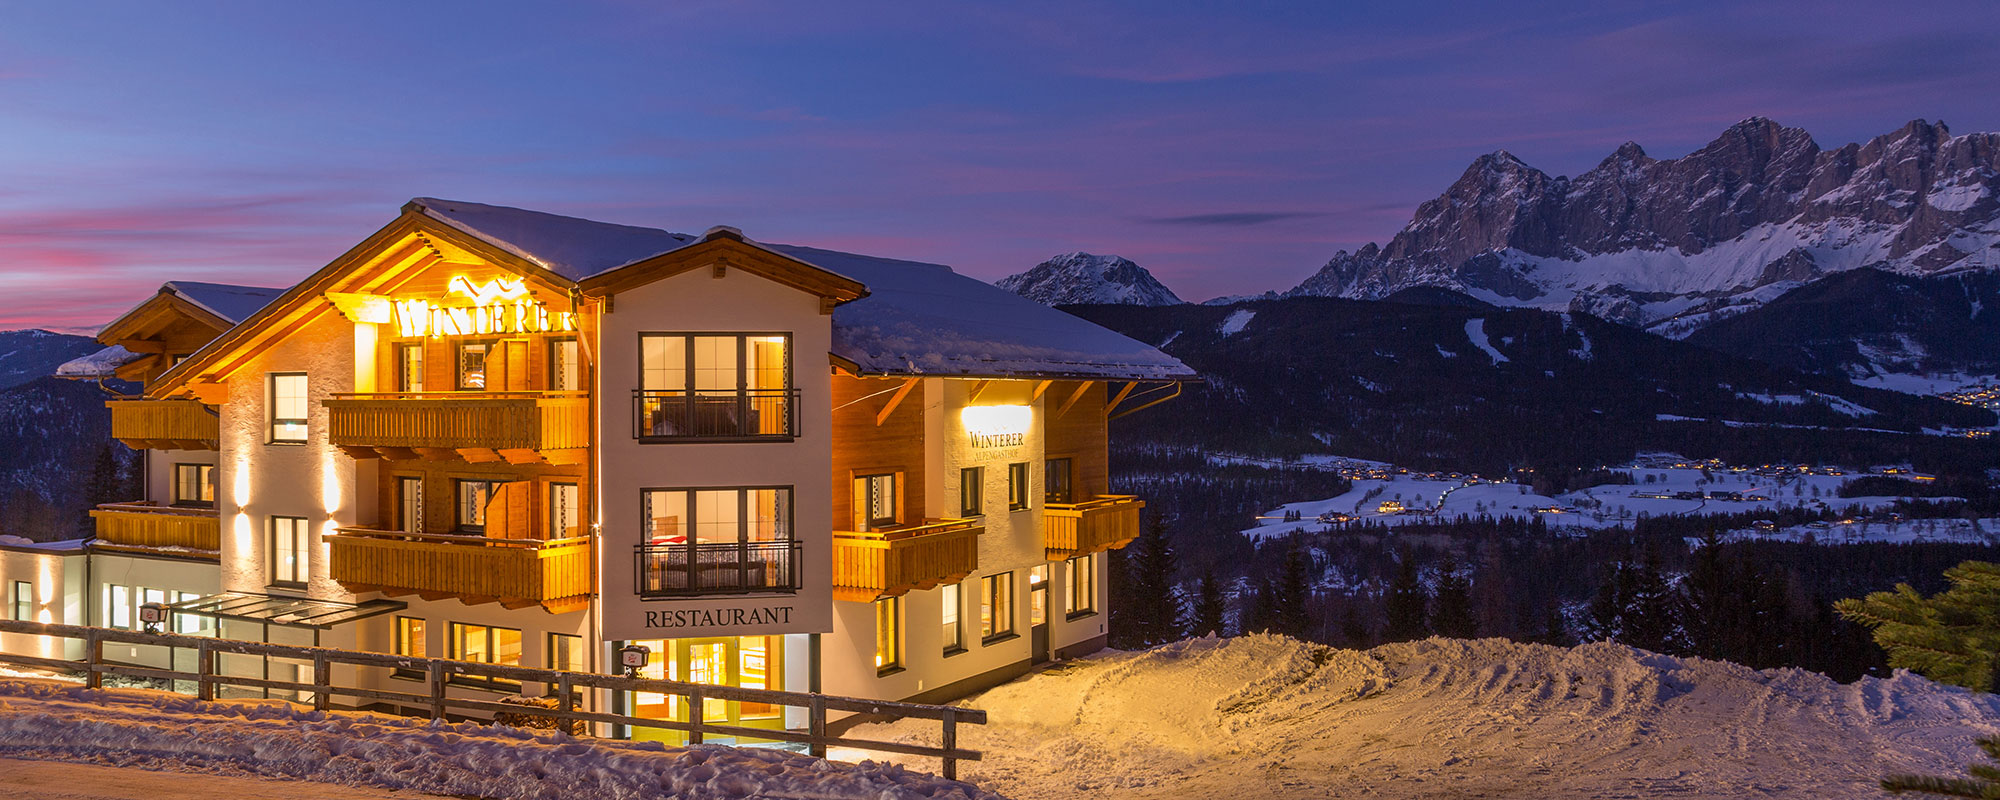 Blue hour at Hotel Winterer in Schladming